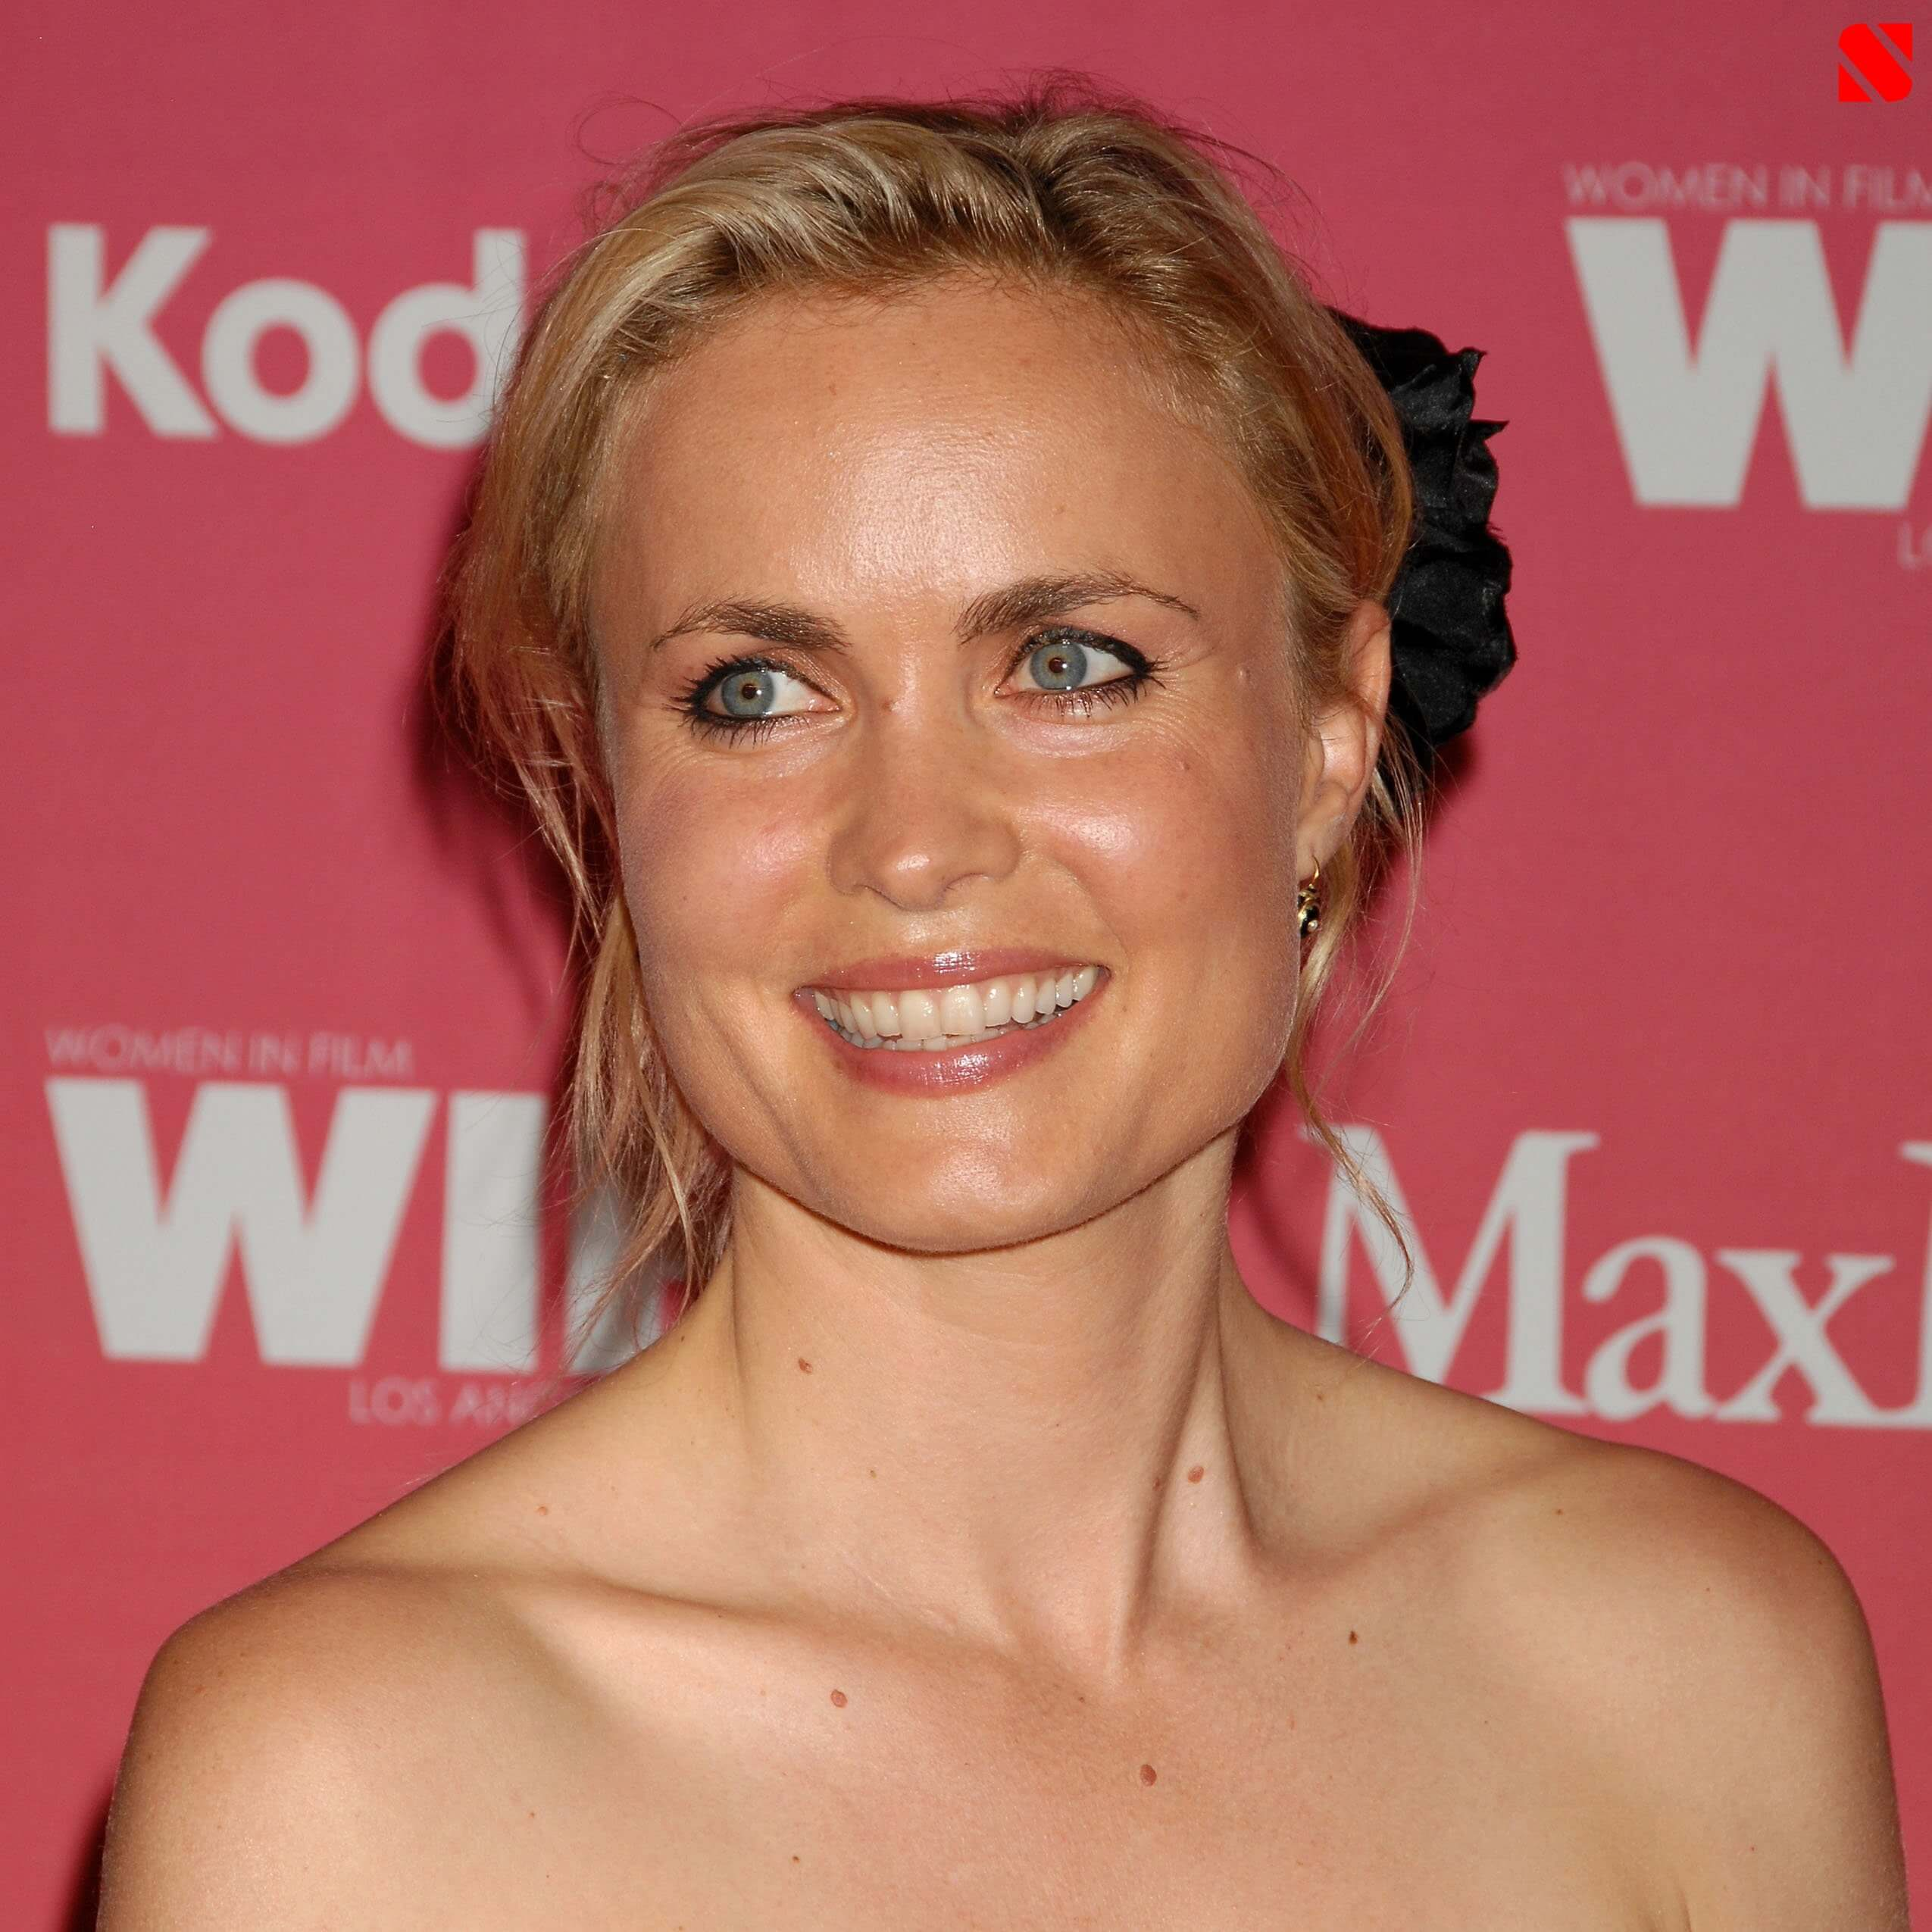 Victoria Ortiz Movies List And Roles Lucifer: Radha Mitchell Biography